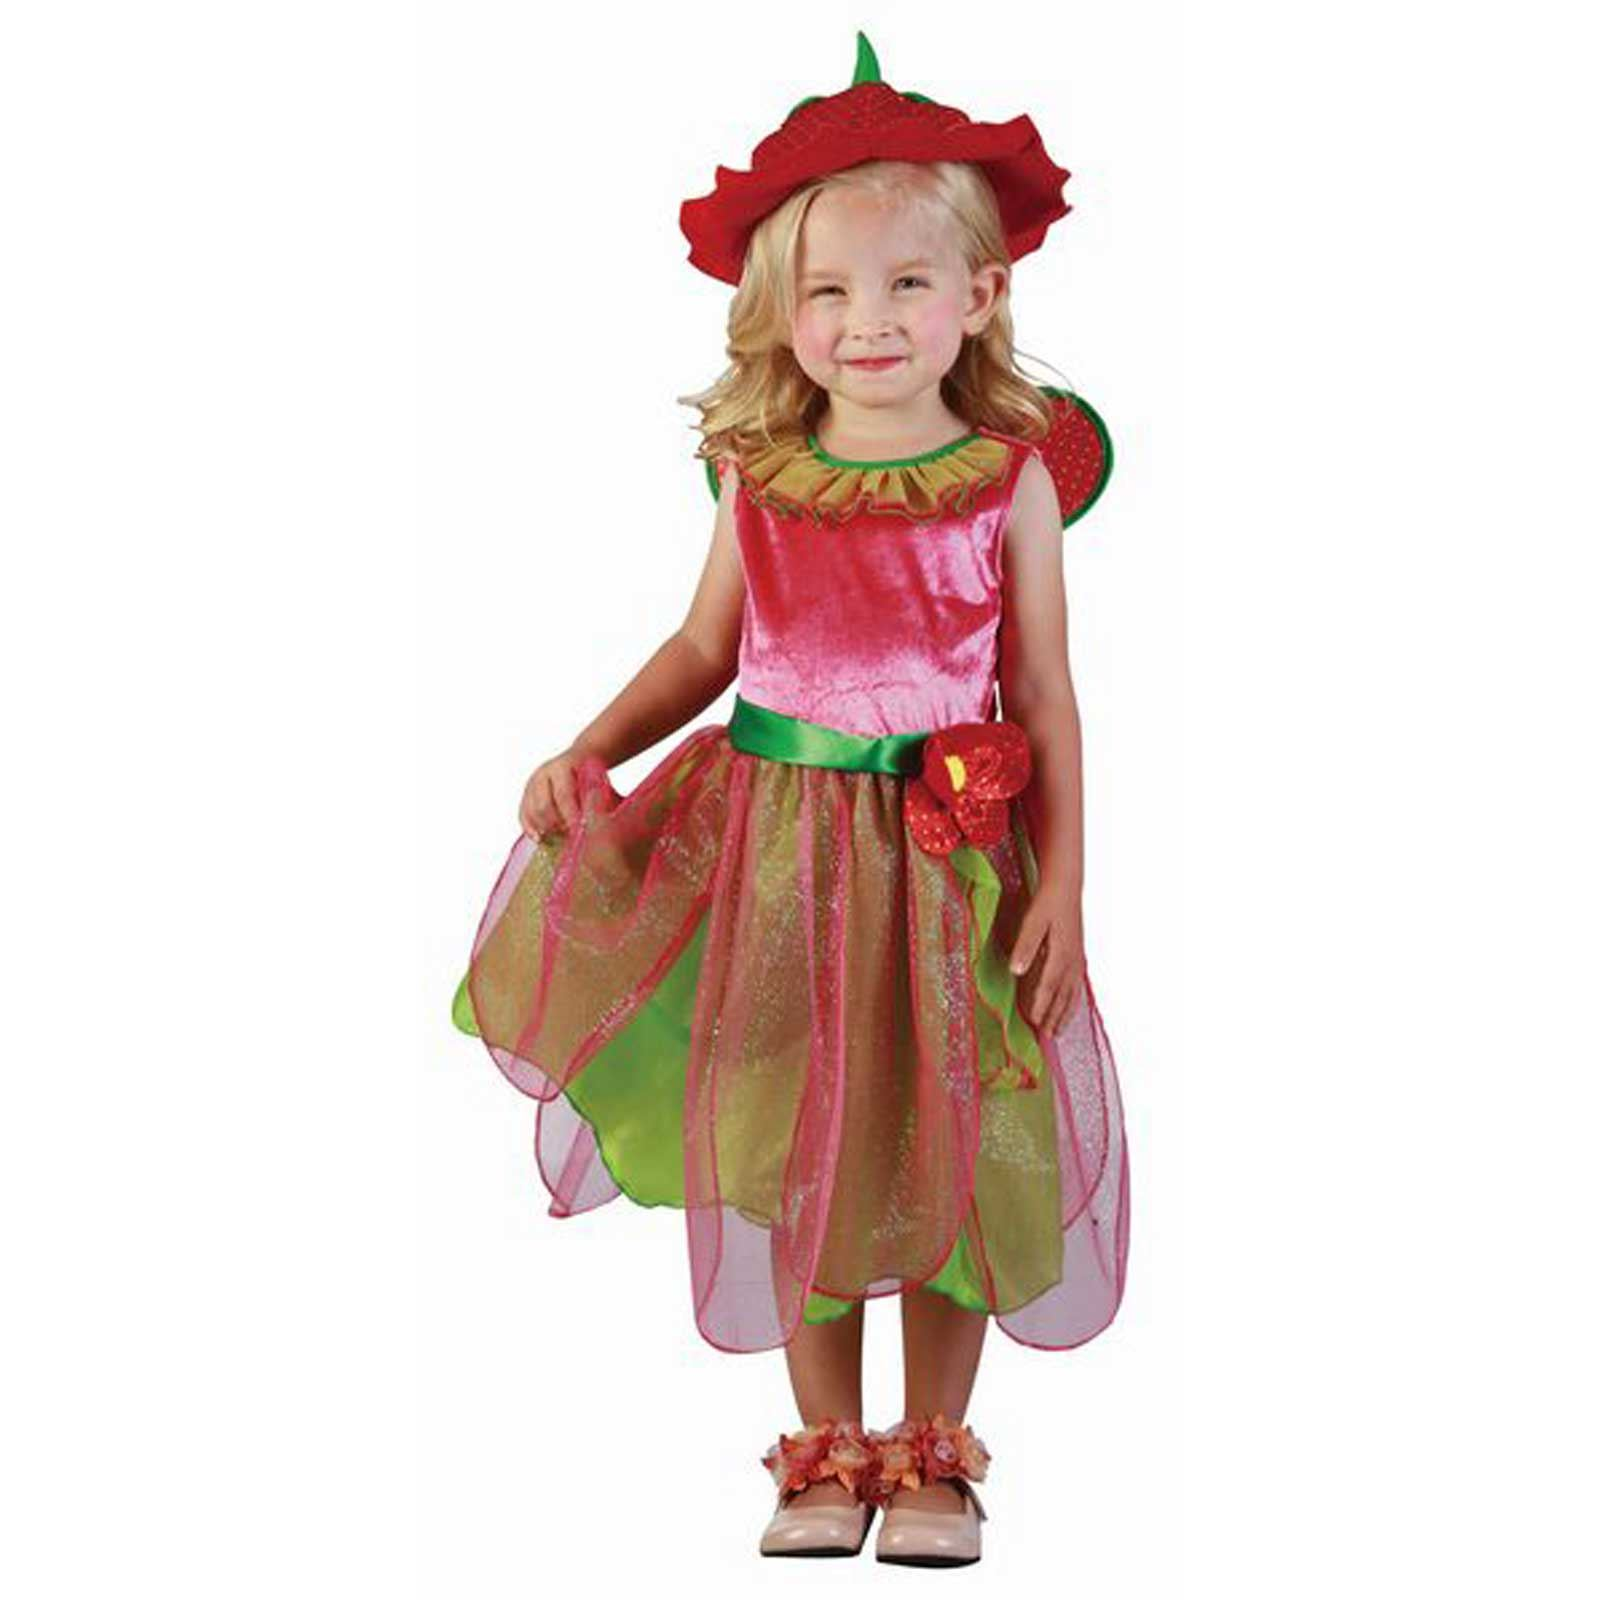 You searched for: toddler fancy dress! Etsy is the home to thousands of handmade, vintage, and one-of-a-kind products and gifts related to your search. No matter what you're looking for or where you are in the world, our global marketplace of sellers can help you .